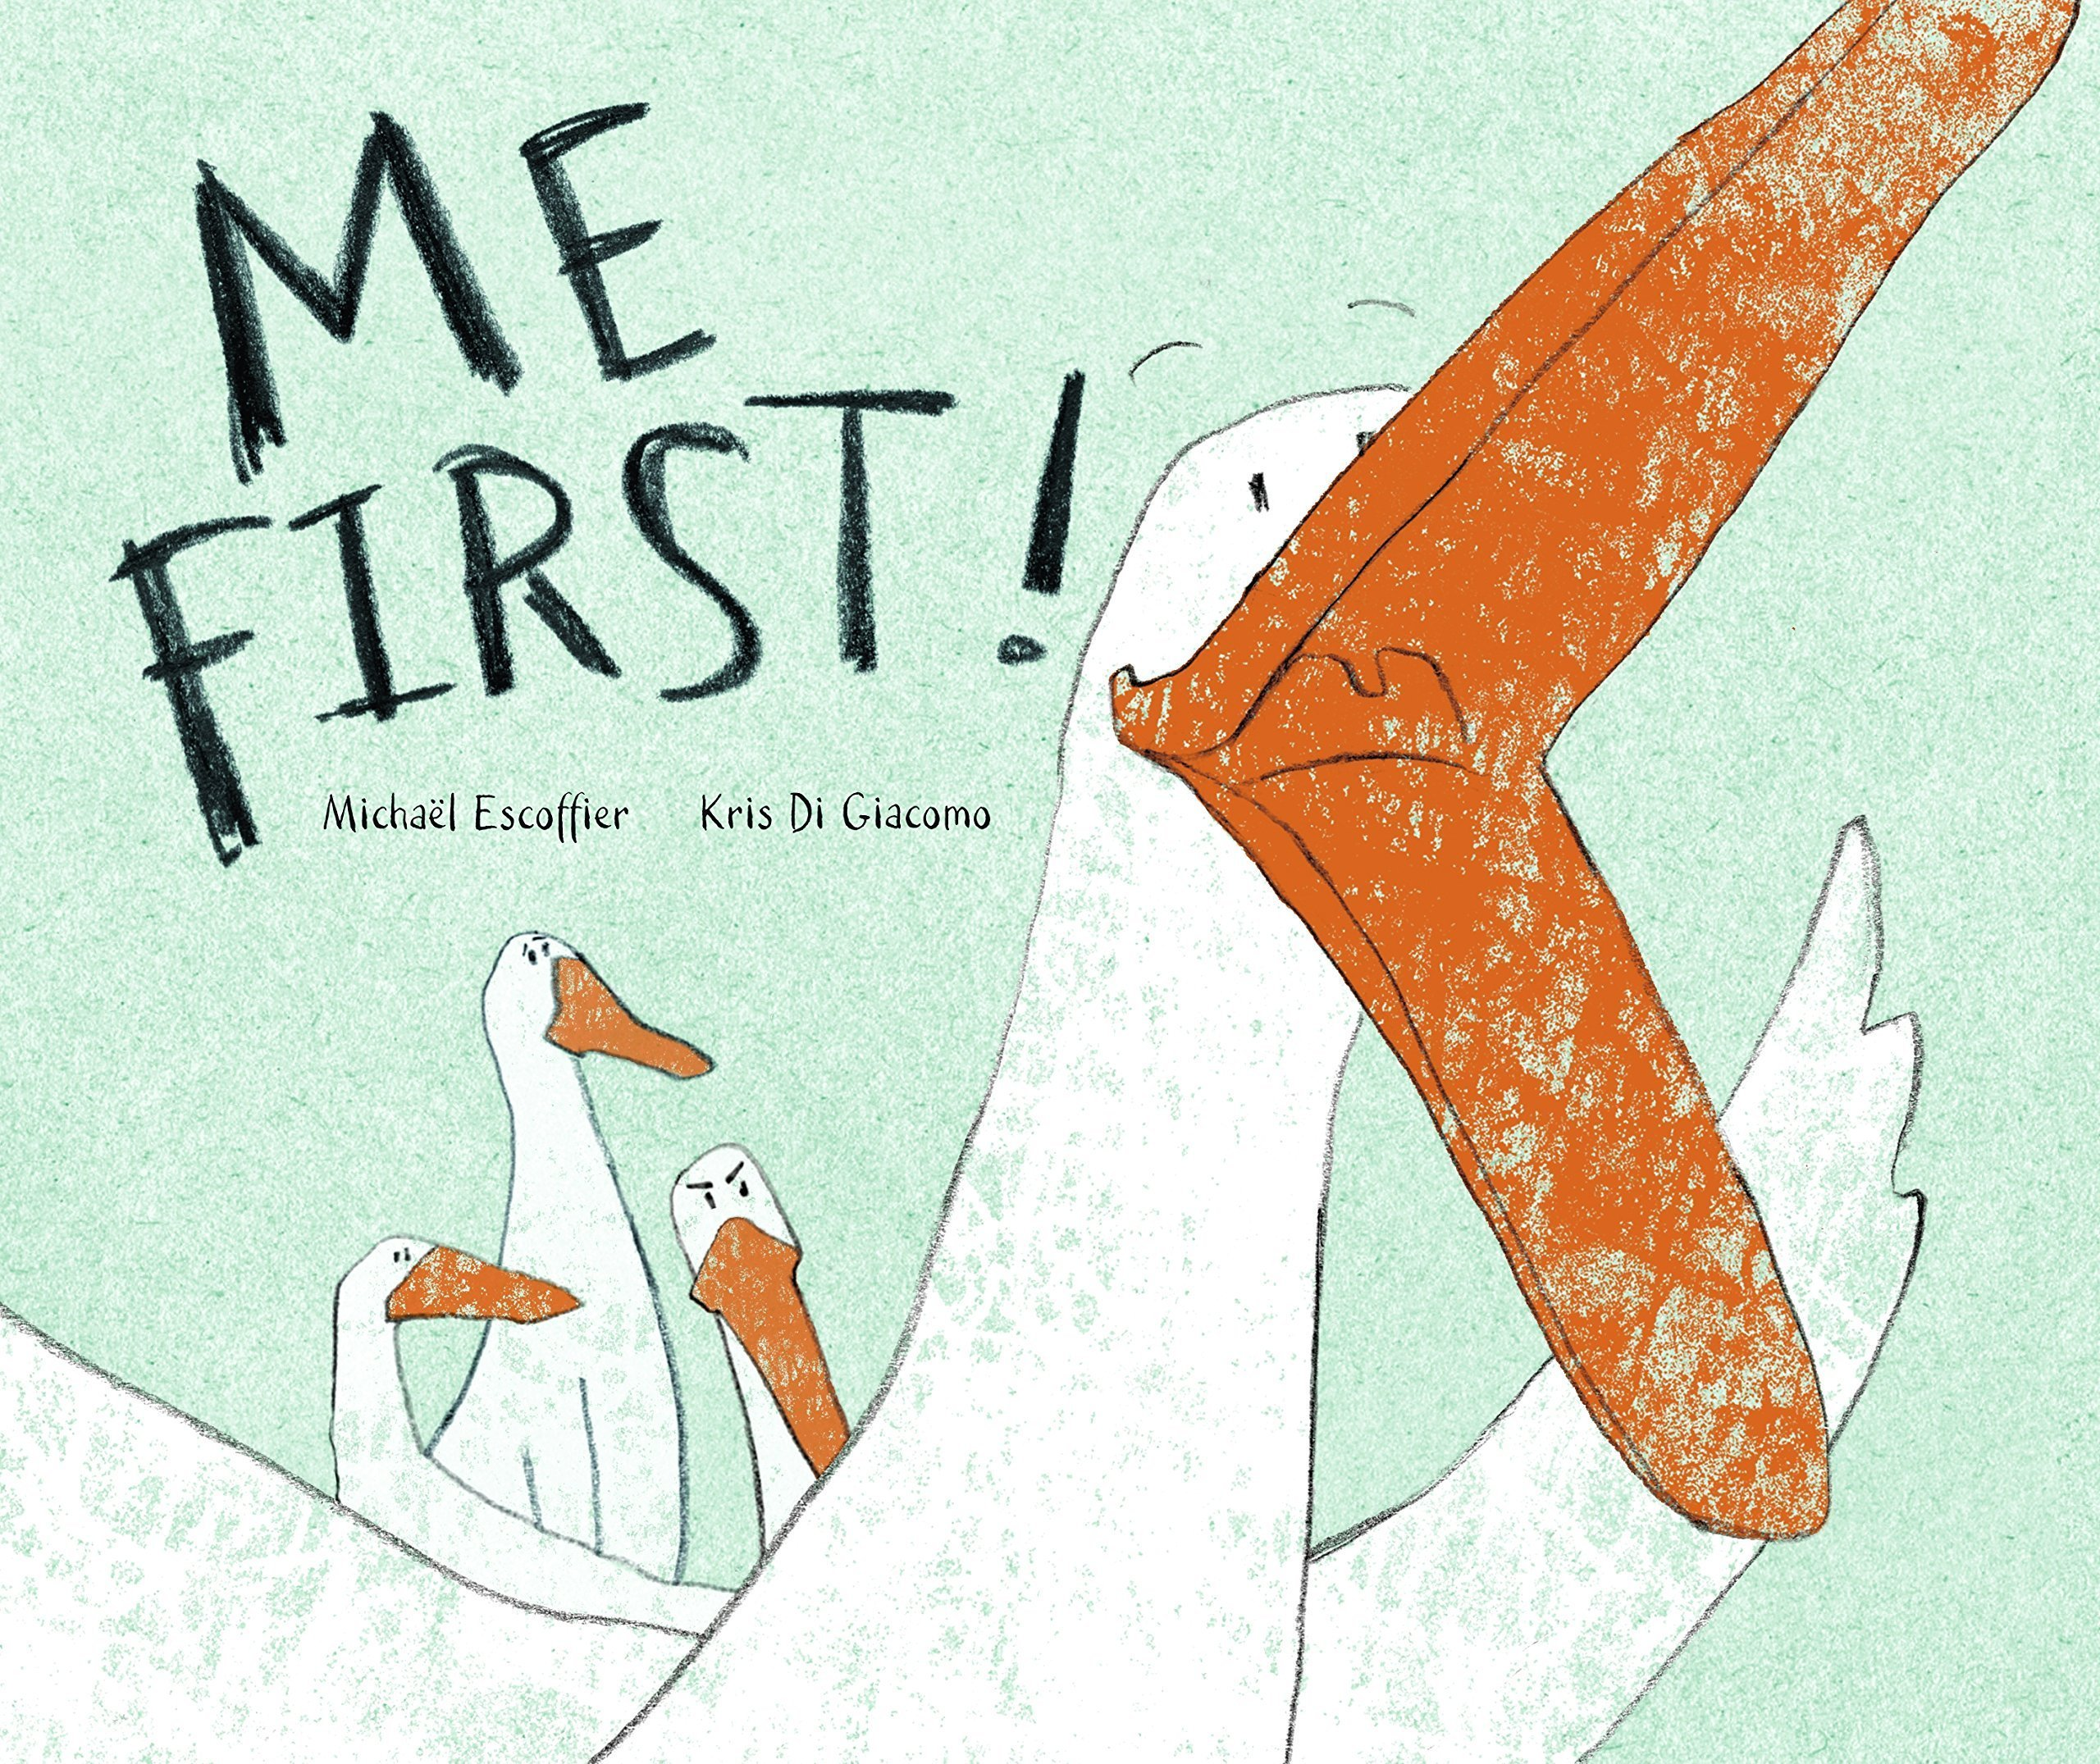 Me First! by Michaël Escoffier